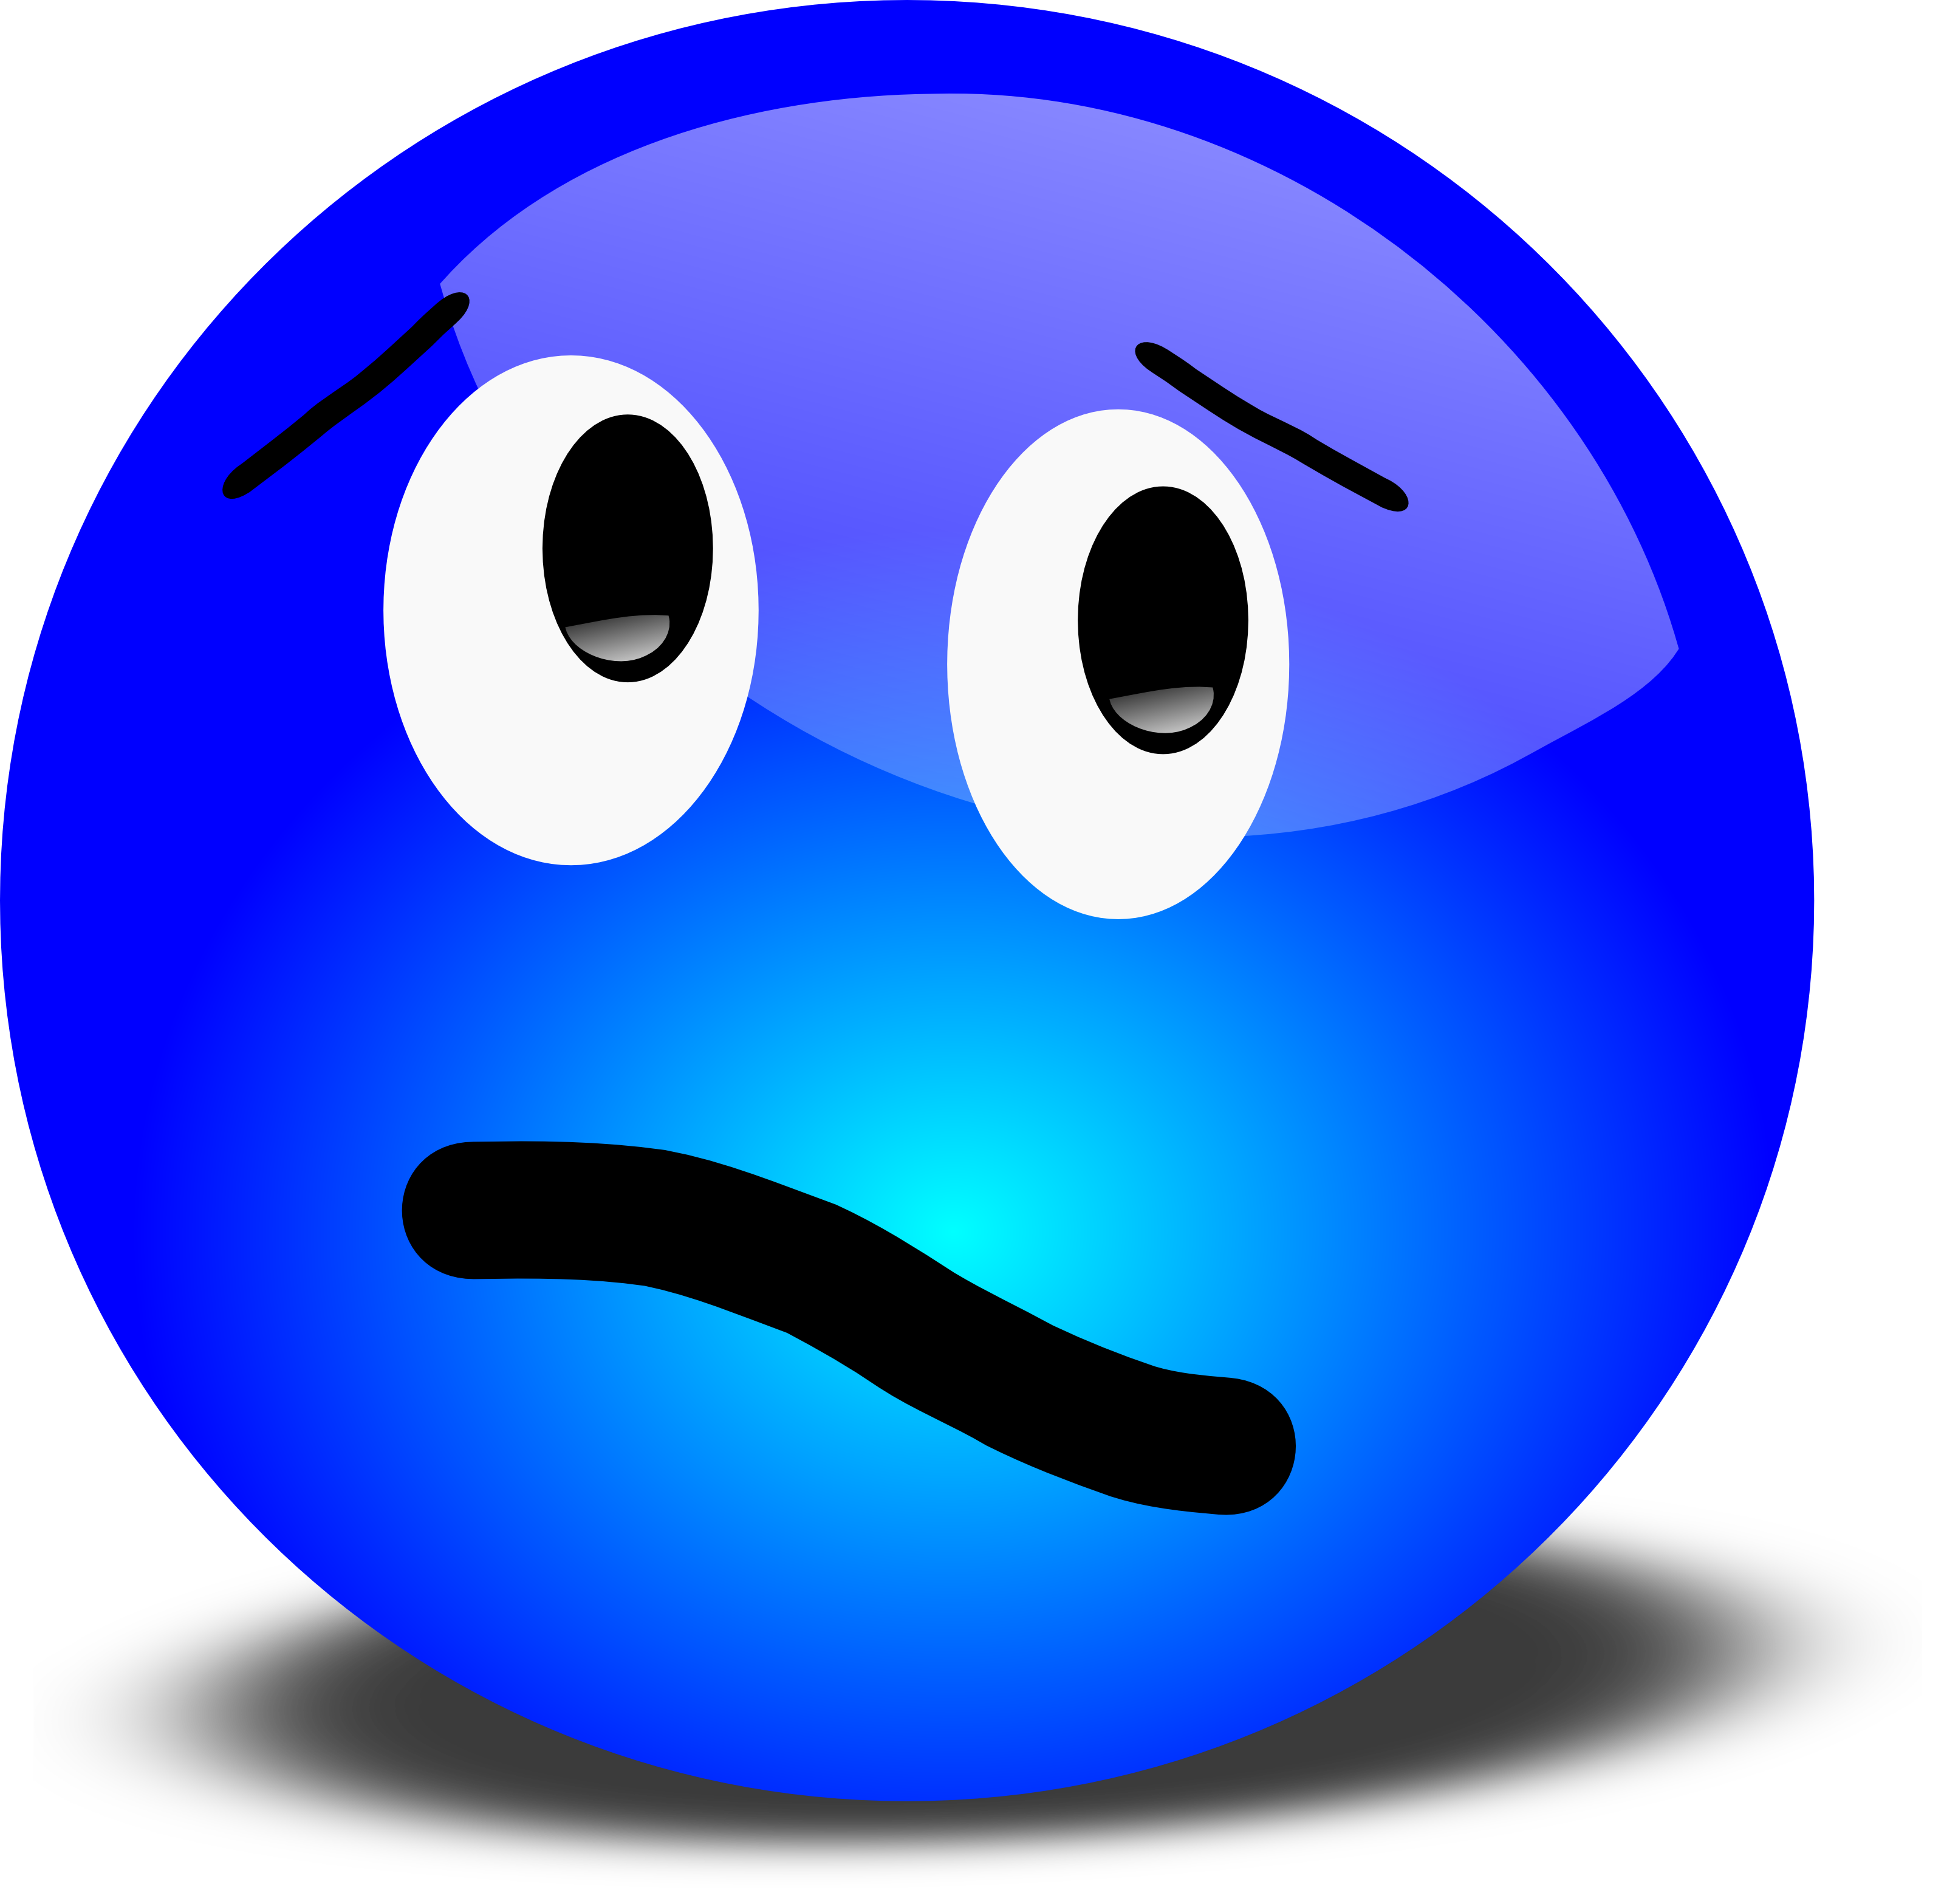 Confused Face Emoticon Facebook Images & Pictures Becuo.